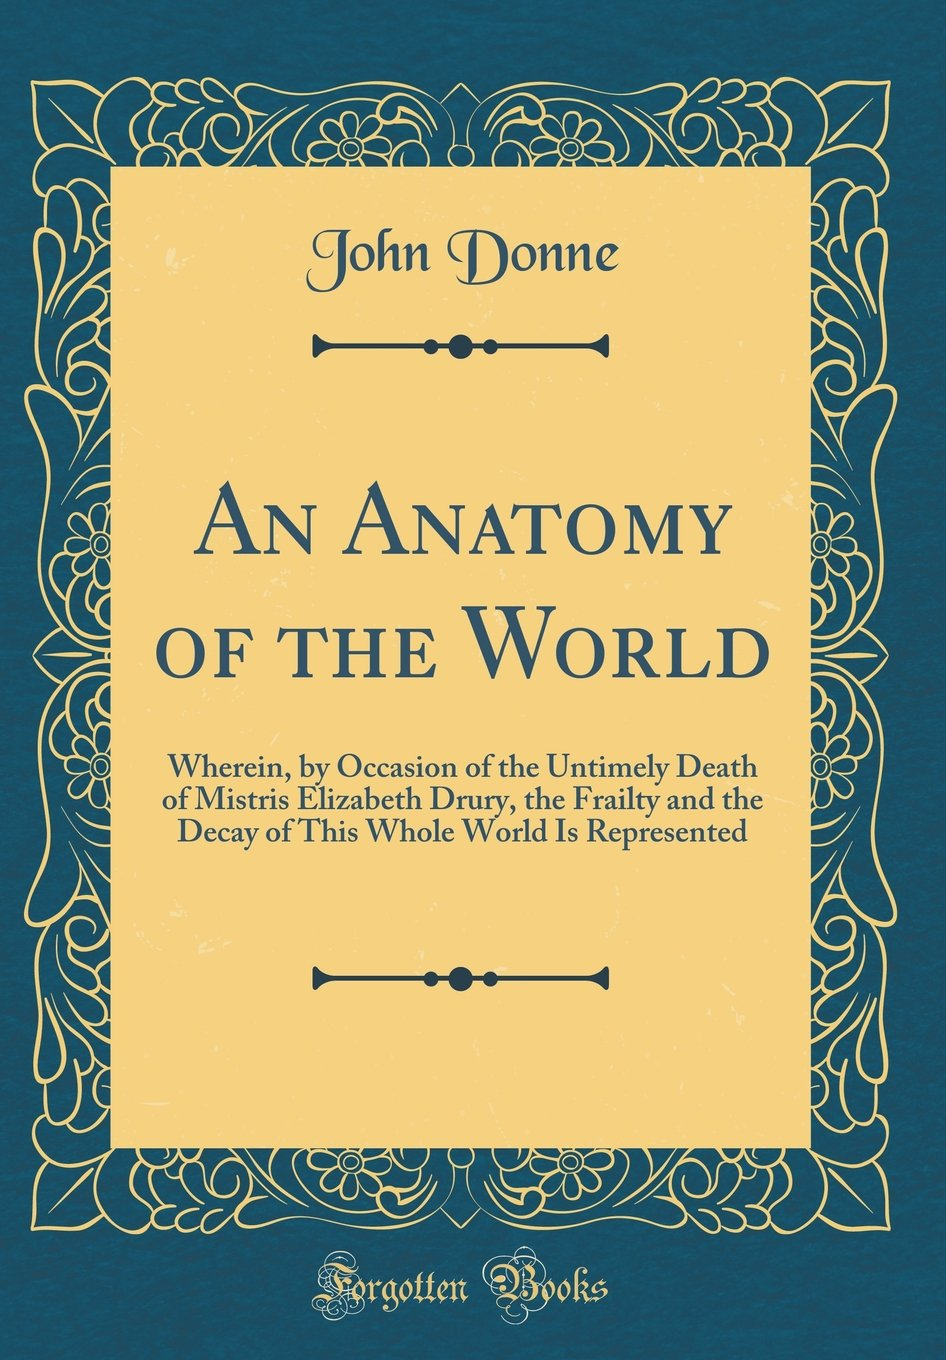 Famous John Donne Anatomy Of The World Photo - Physiology Of Human ...